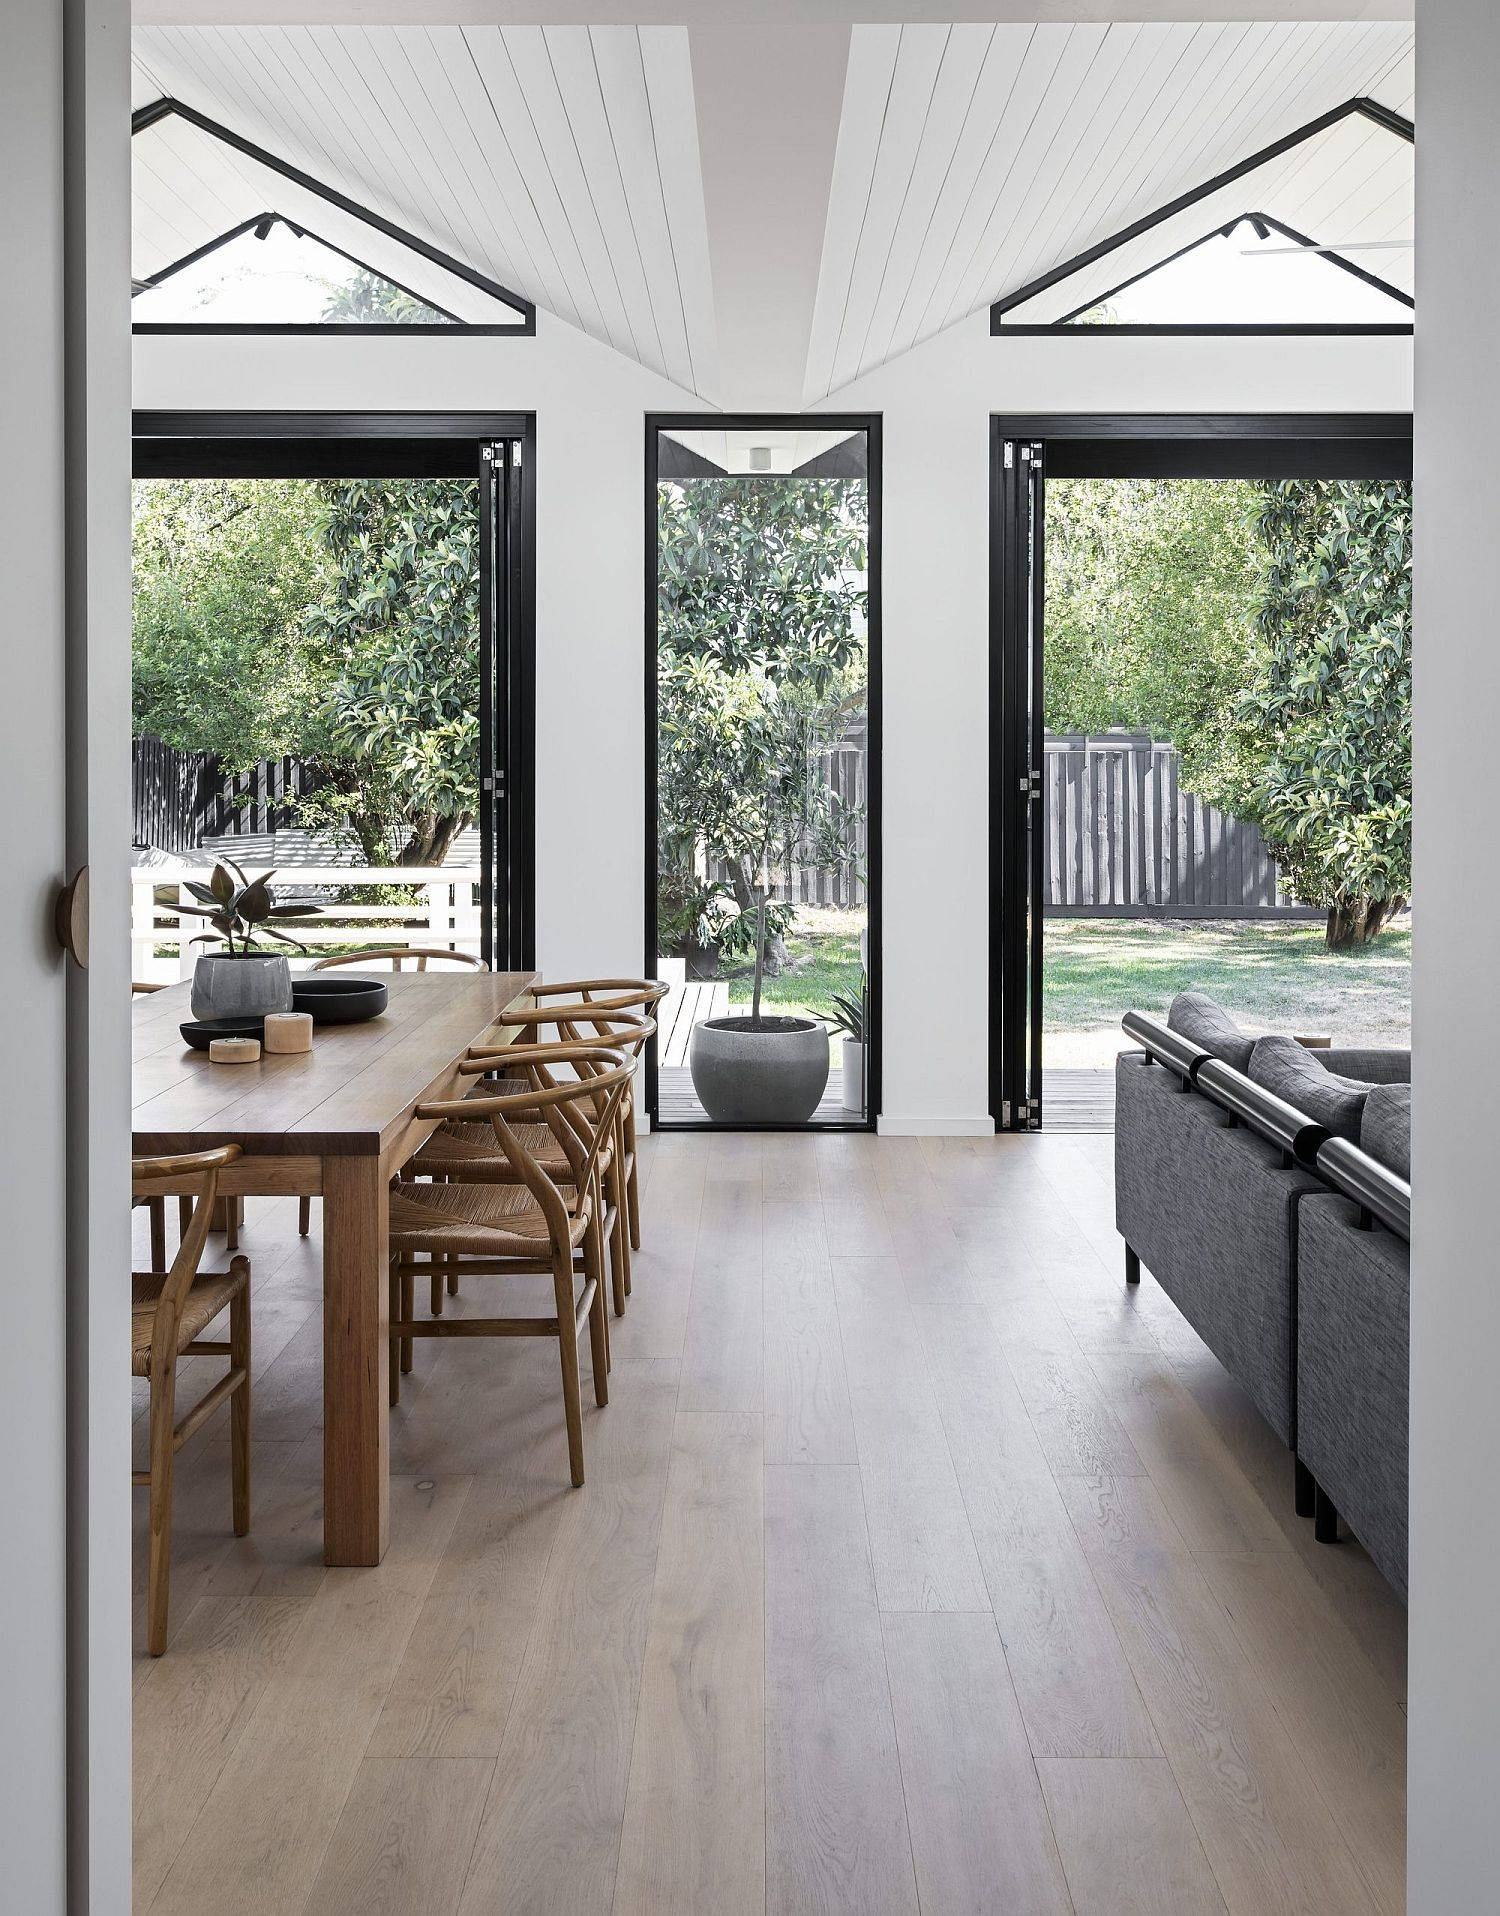 Move-beyond-the-traditional-rectangular-clerestory-windows-with-ingenious-triangular-additions-29997